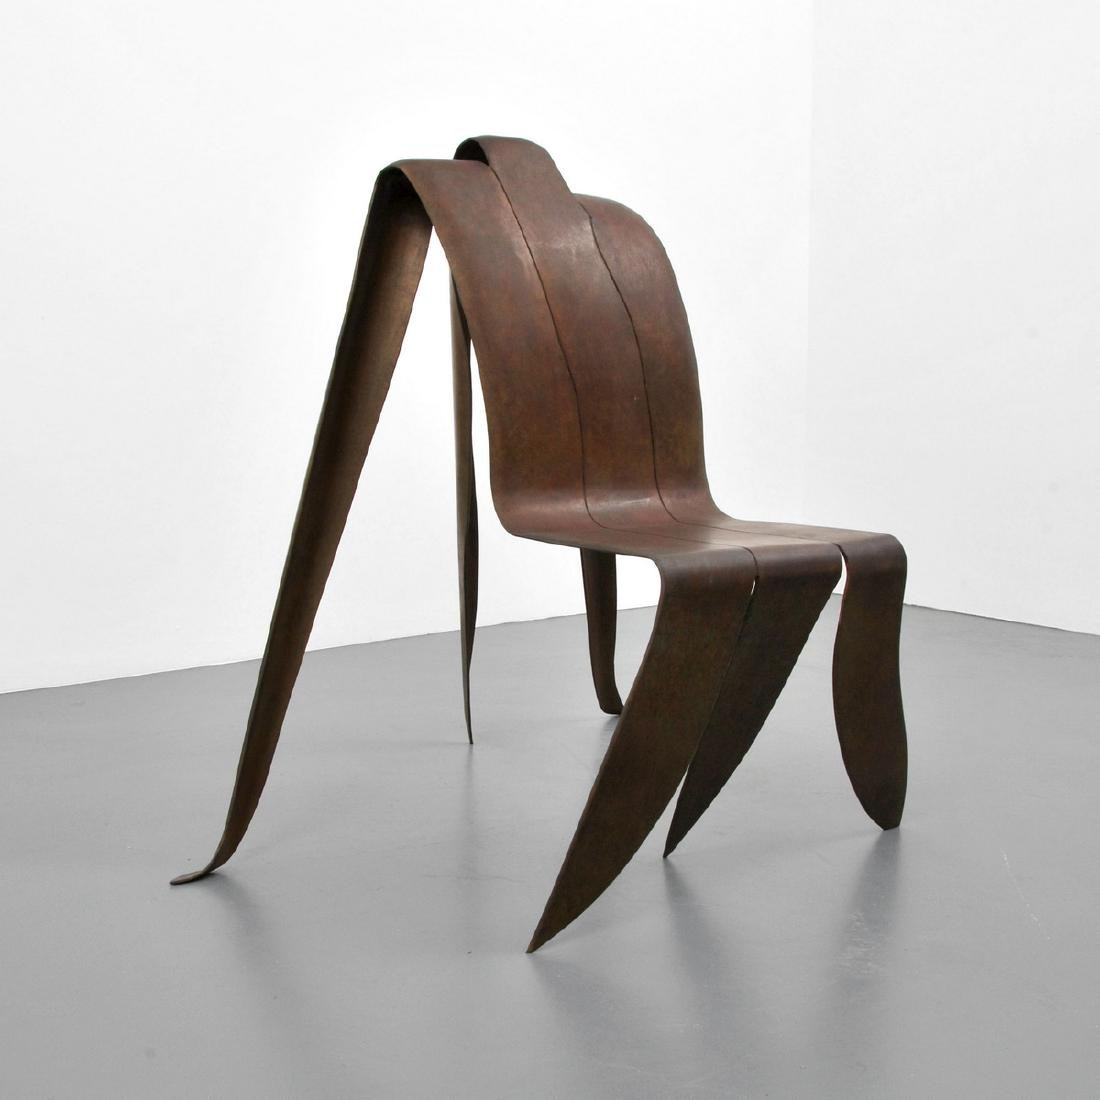 Sculptural Chair, Manner of Vivian Beer, Signed Edition